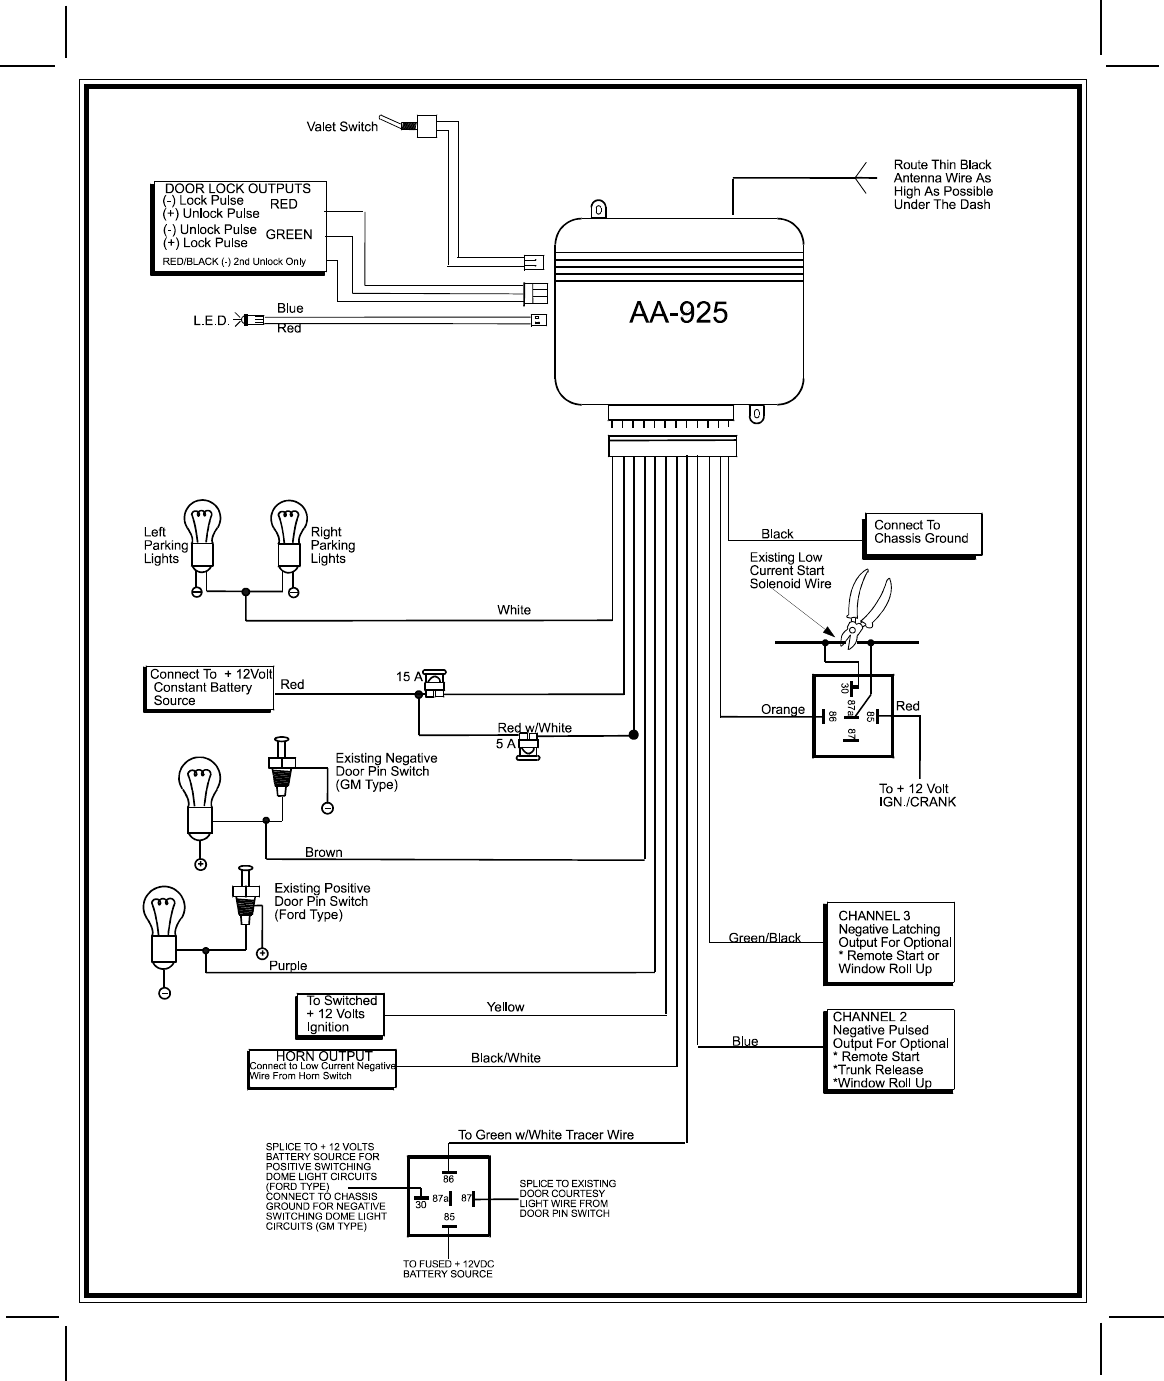 728e5939 5a52 46a4 ba14 2e72baef2843 bg8 page 8 of audiovox automobile alarm aa925 user guide uniden car alarm wiring diagram at crackthecode.co